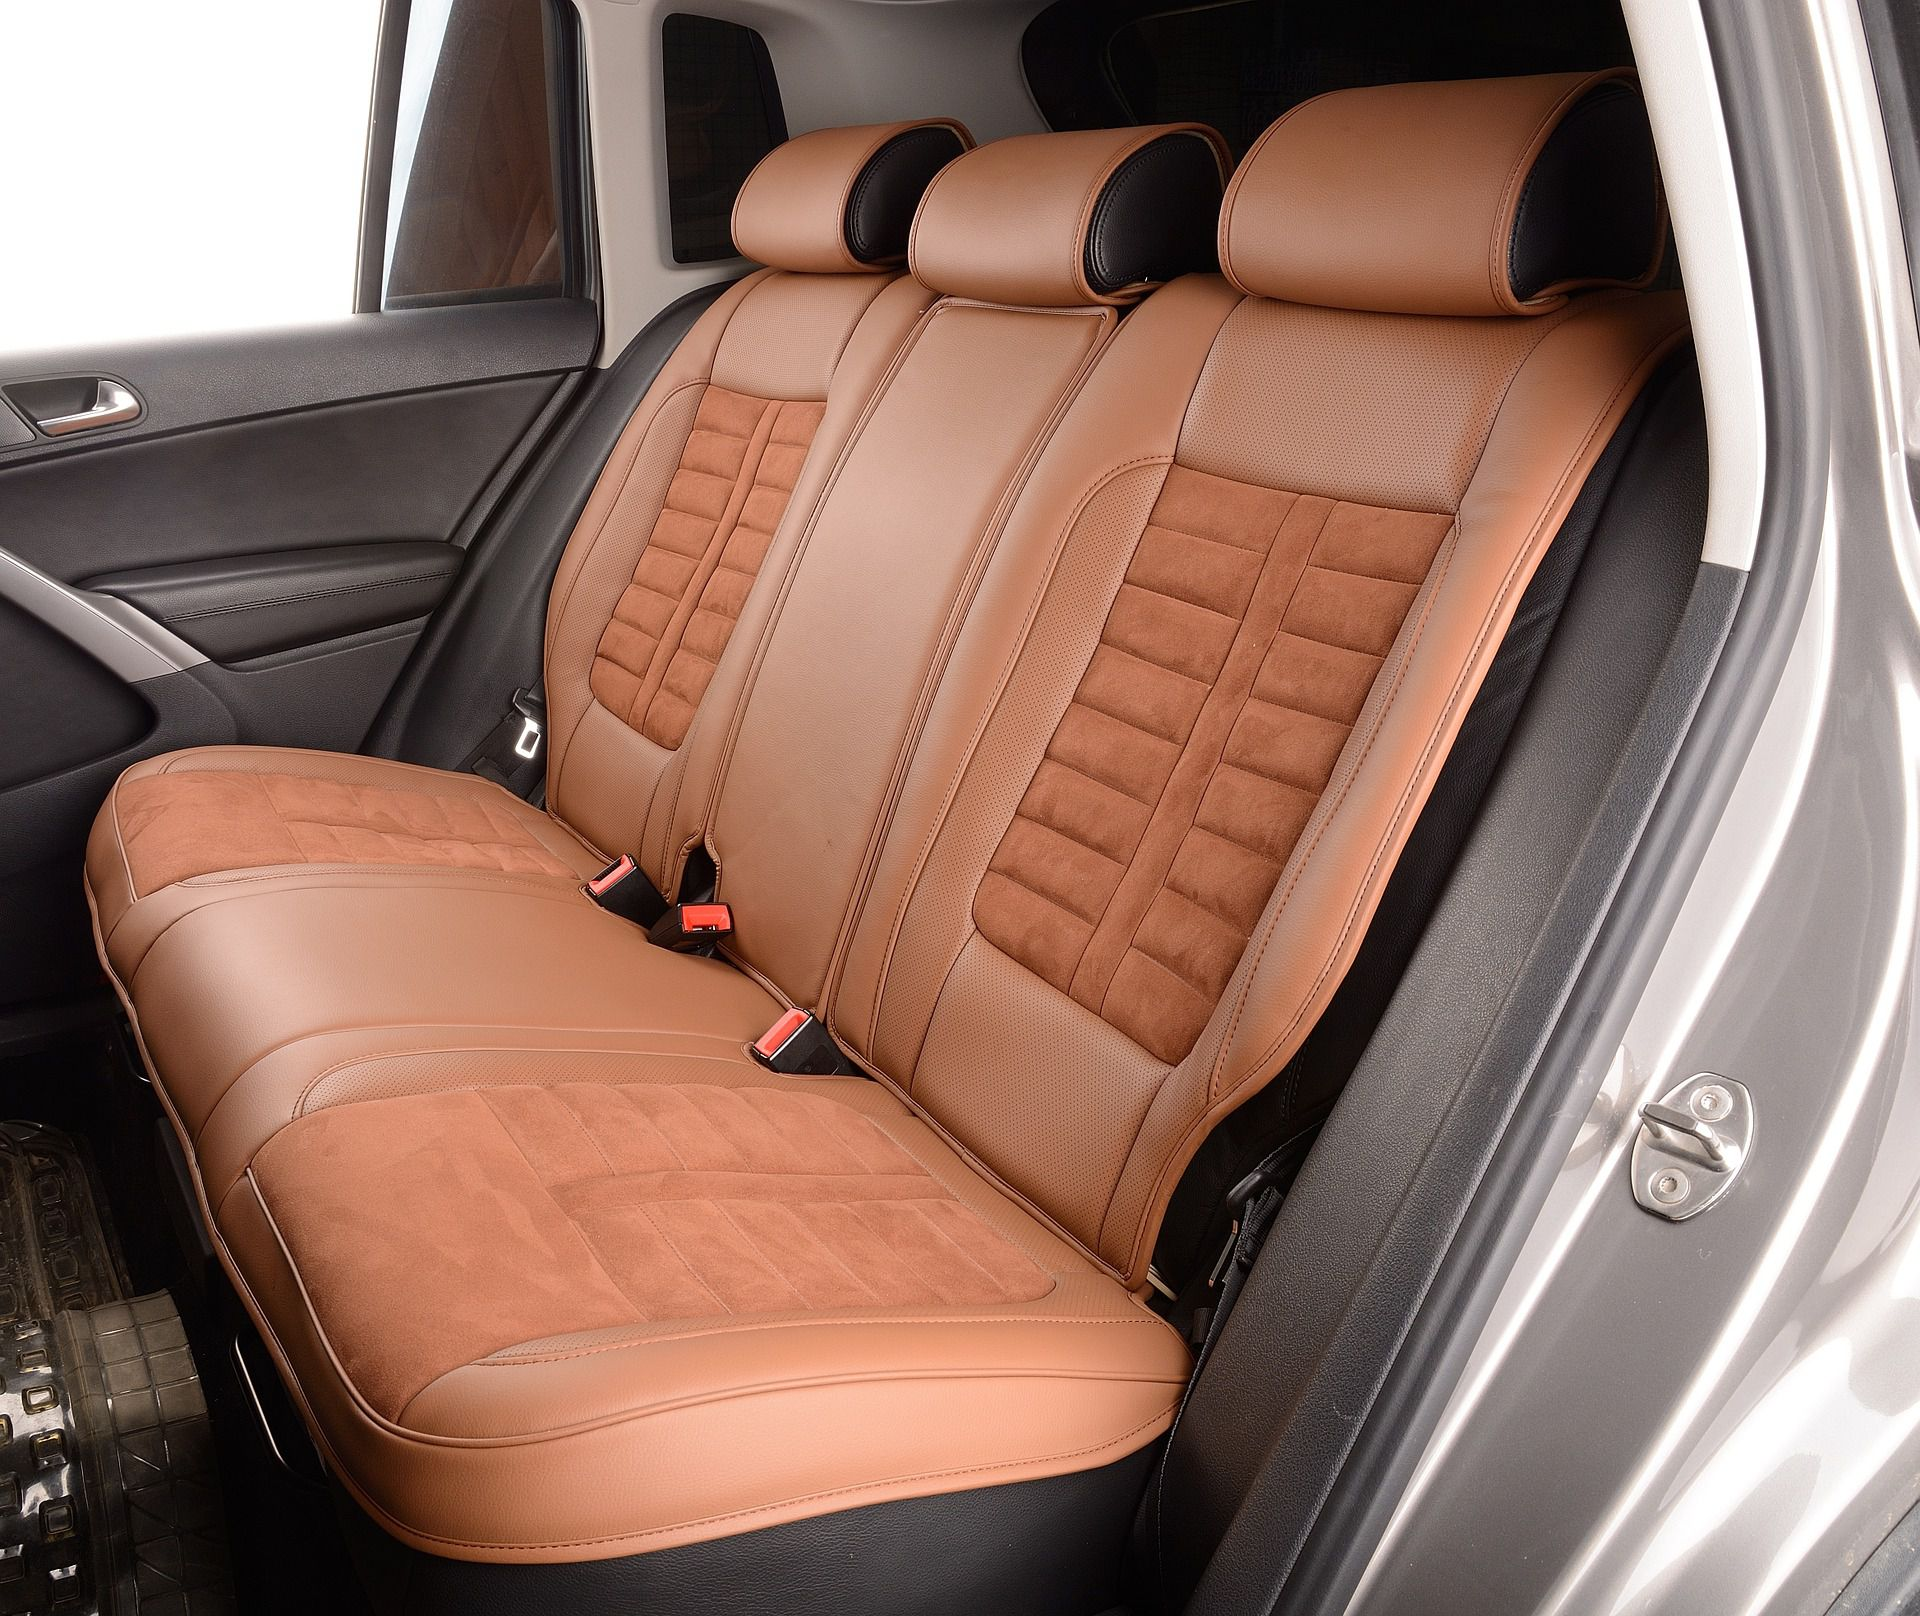 Your Auto Interior Is First Air Purged And Vacuumed To Remove Dust Dirt Other Debris From Cars Including Floor Boards Hard